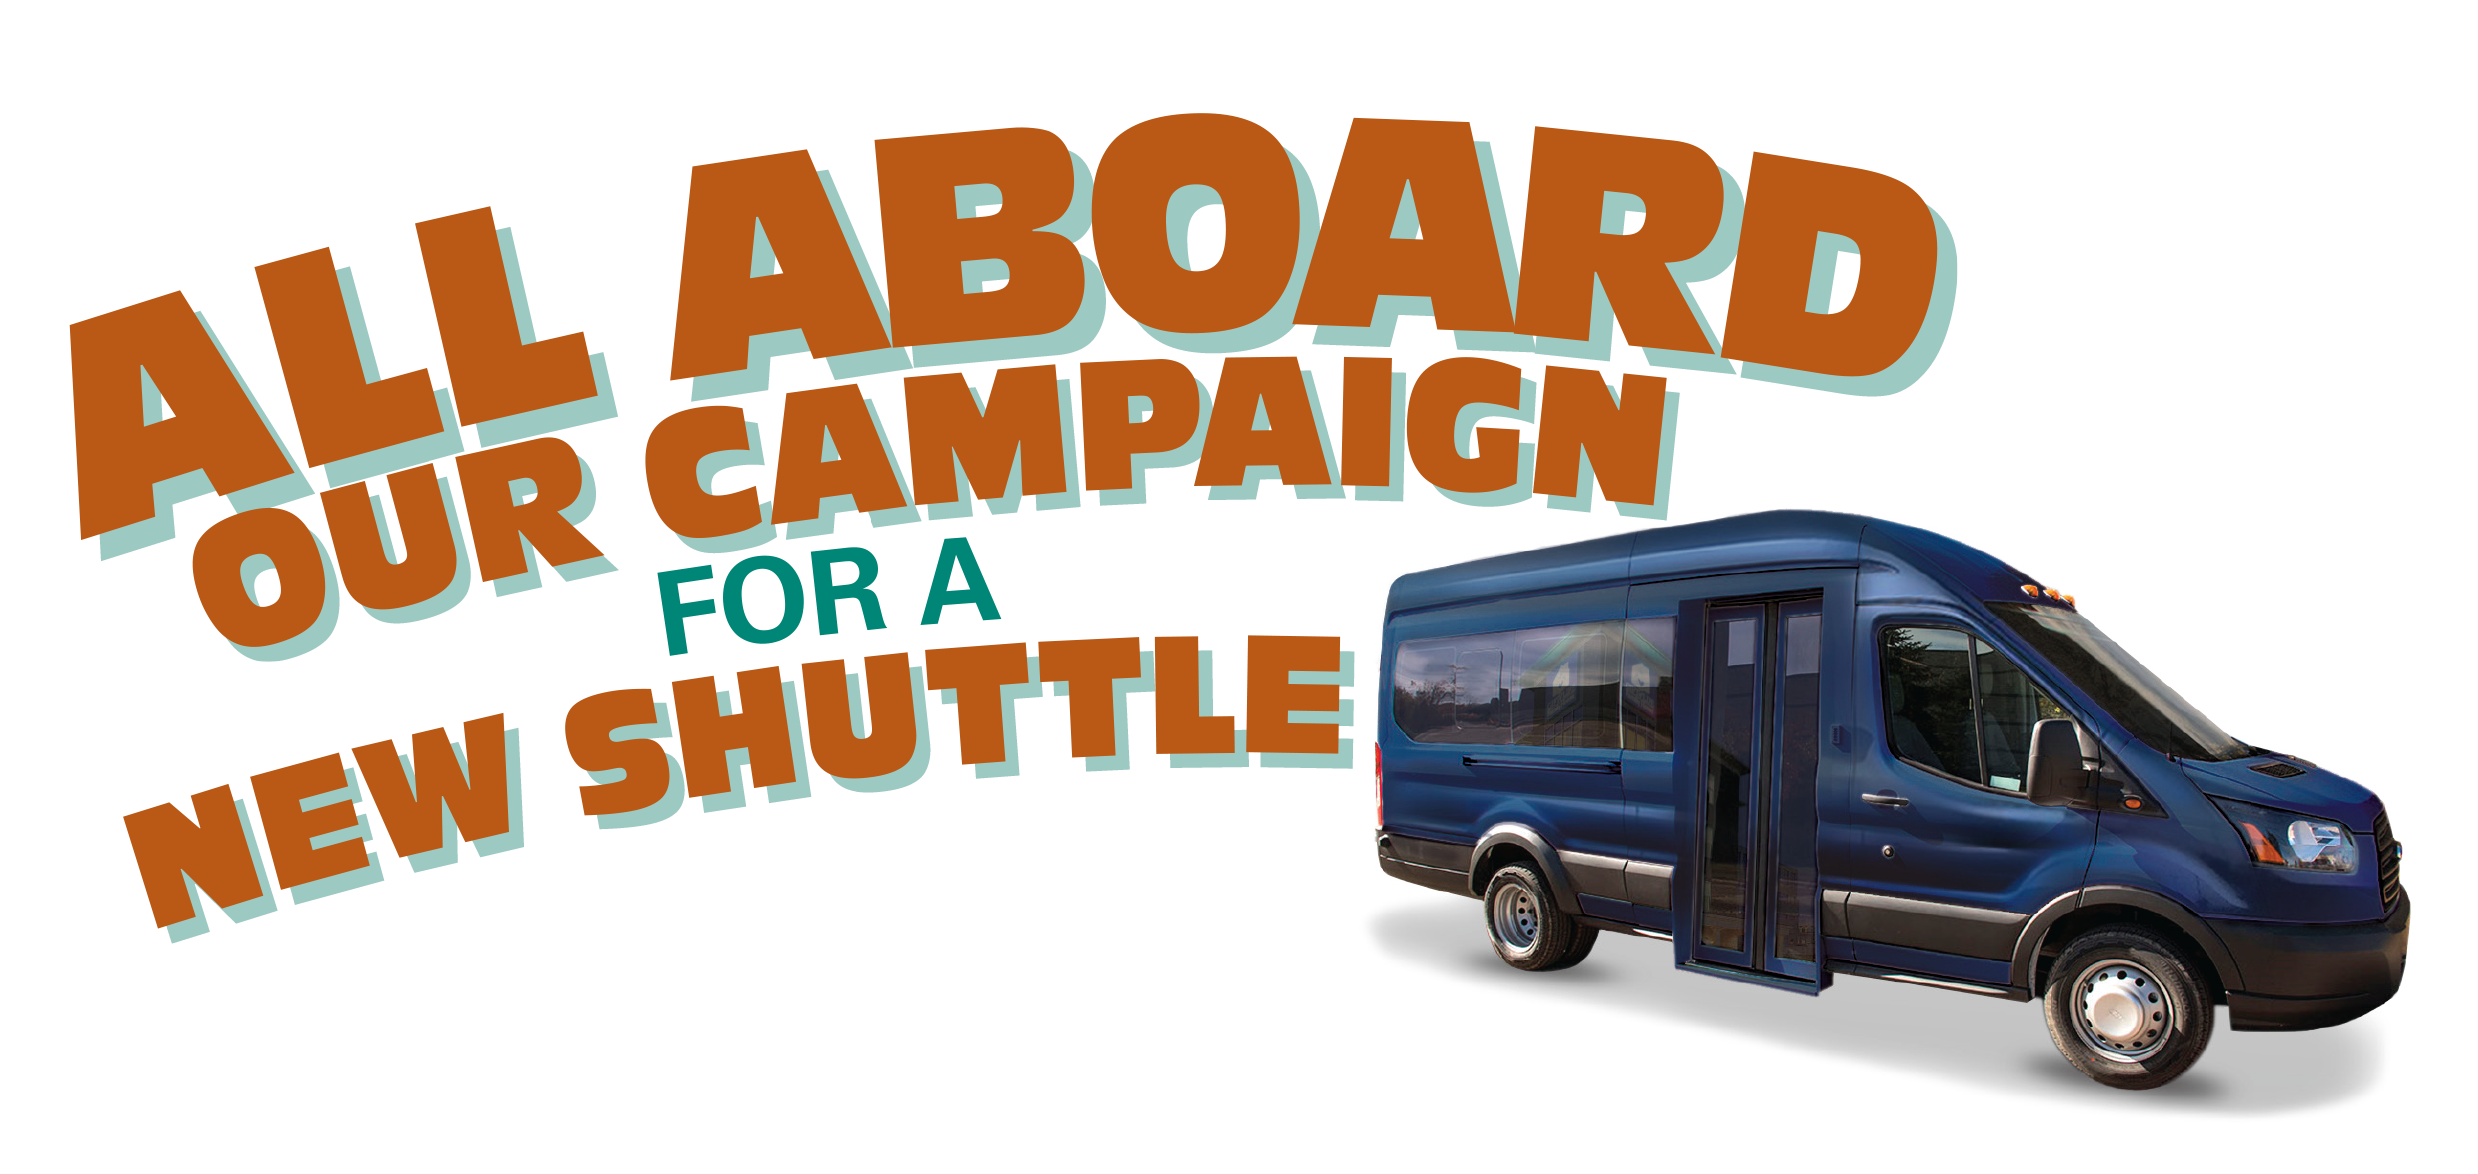 Minivan clipart van shuttle. All aboard our campaign